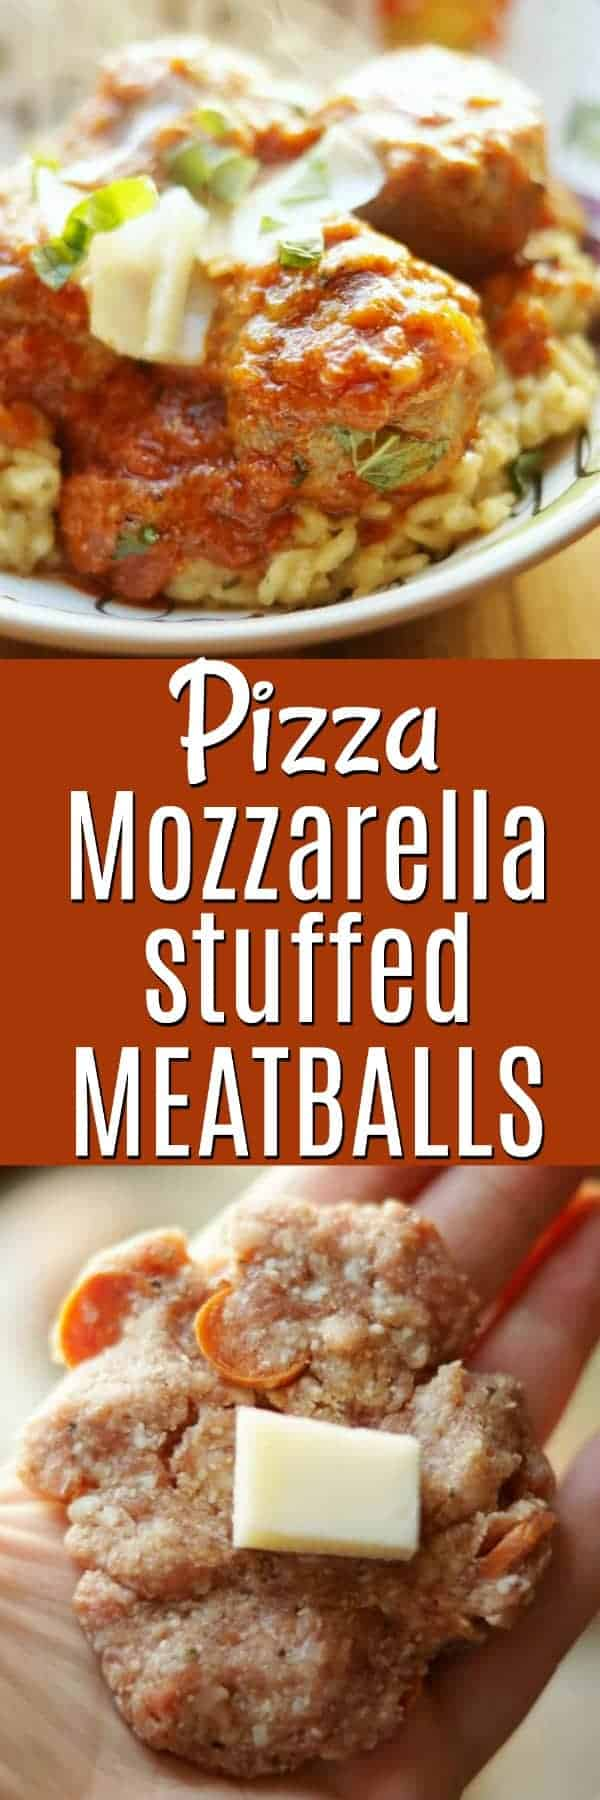 Pizza mozzarella stuffed meatballs